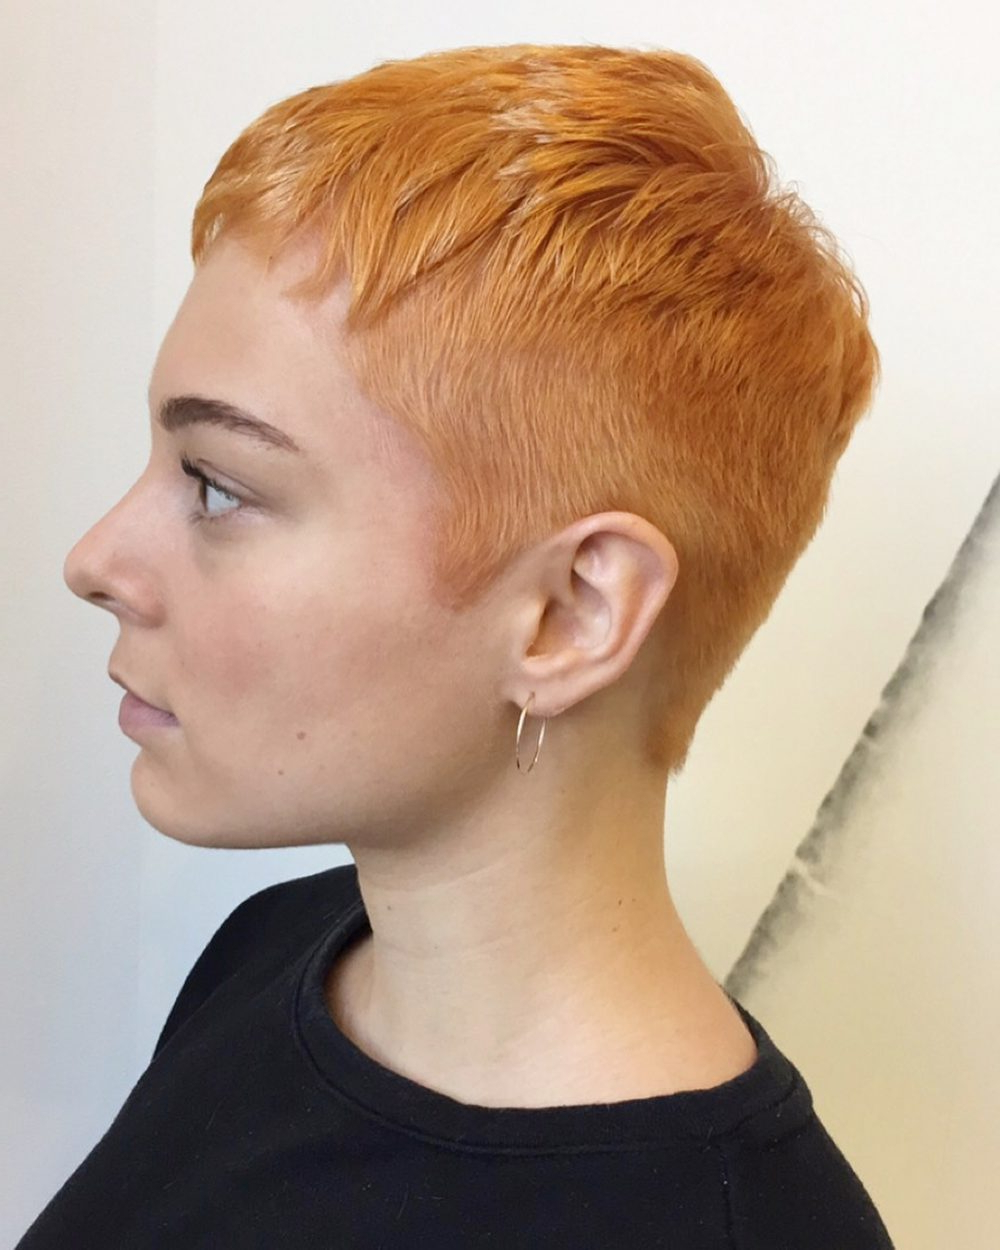 27 Very Short Haircuts You Have To See In 2018 Within Latest Short Hairstyles For Ladies (View 15 of 25)